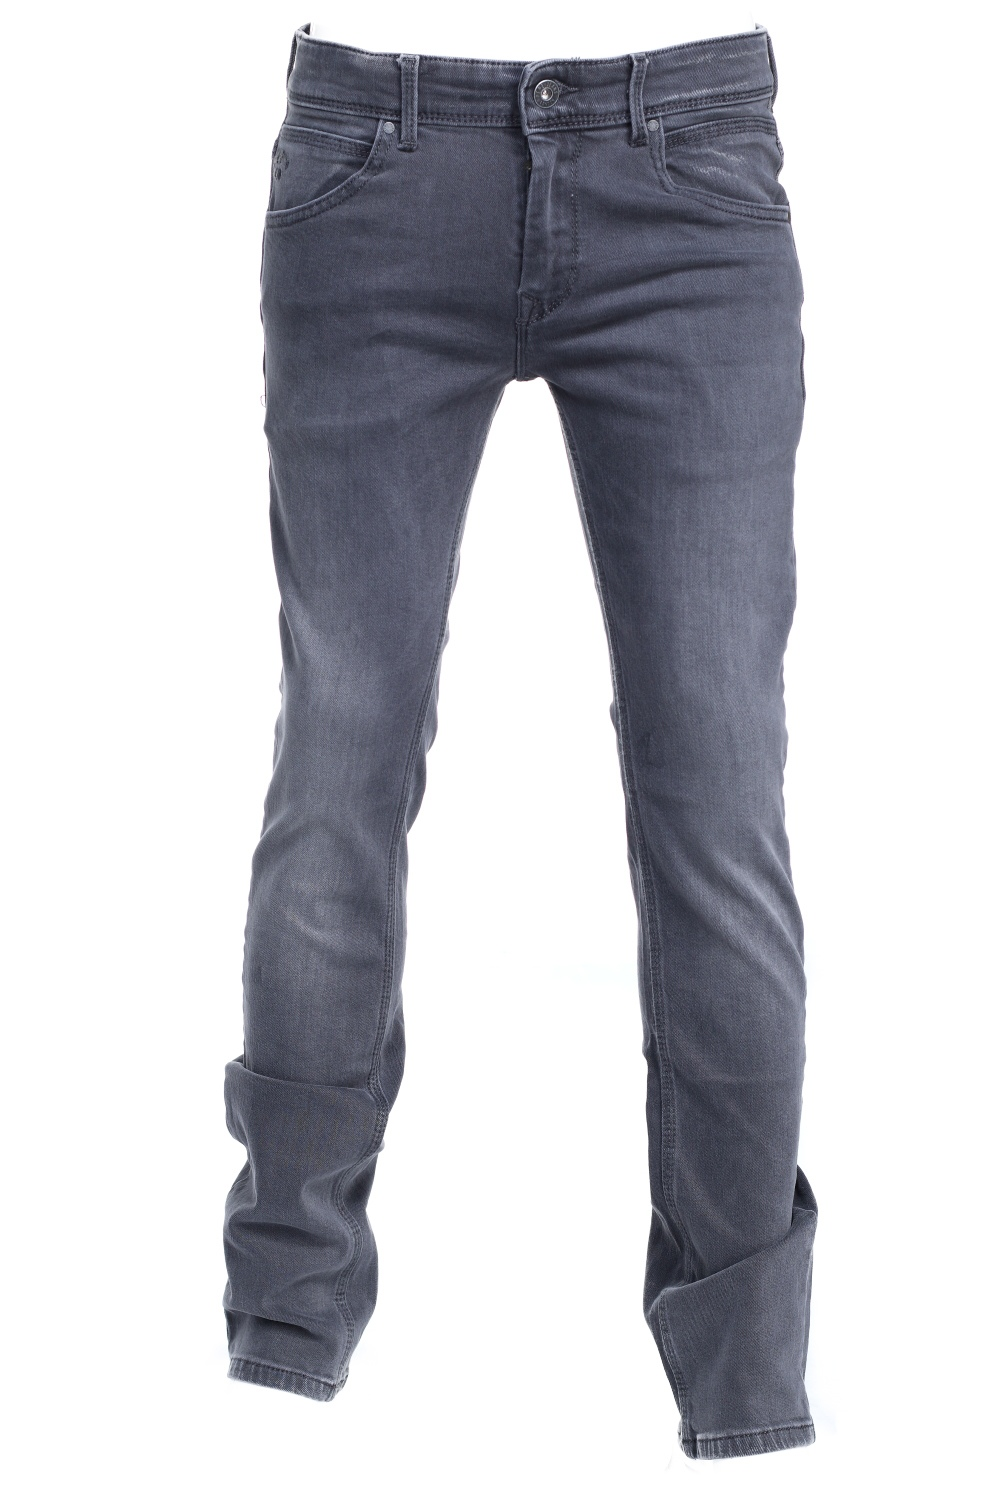 http://www.leadermode.com/124584/pepe-jeans-pb200232-riveted-000-denim.jpg